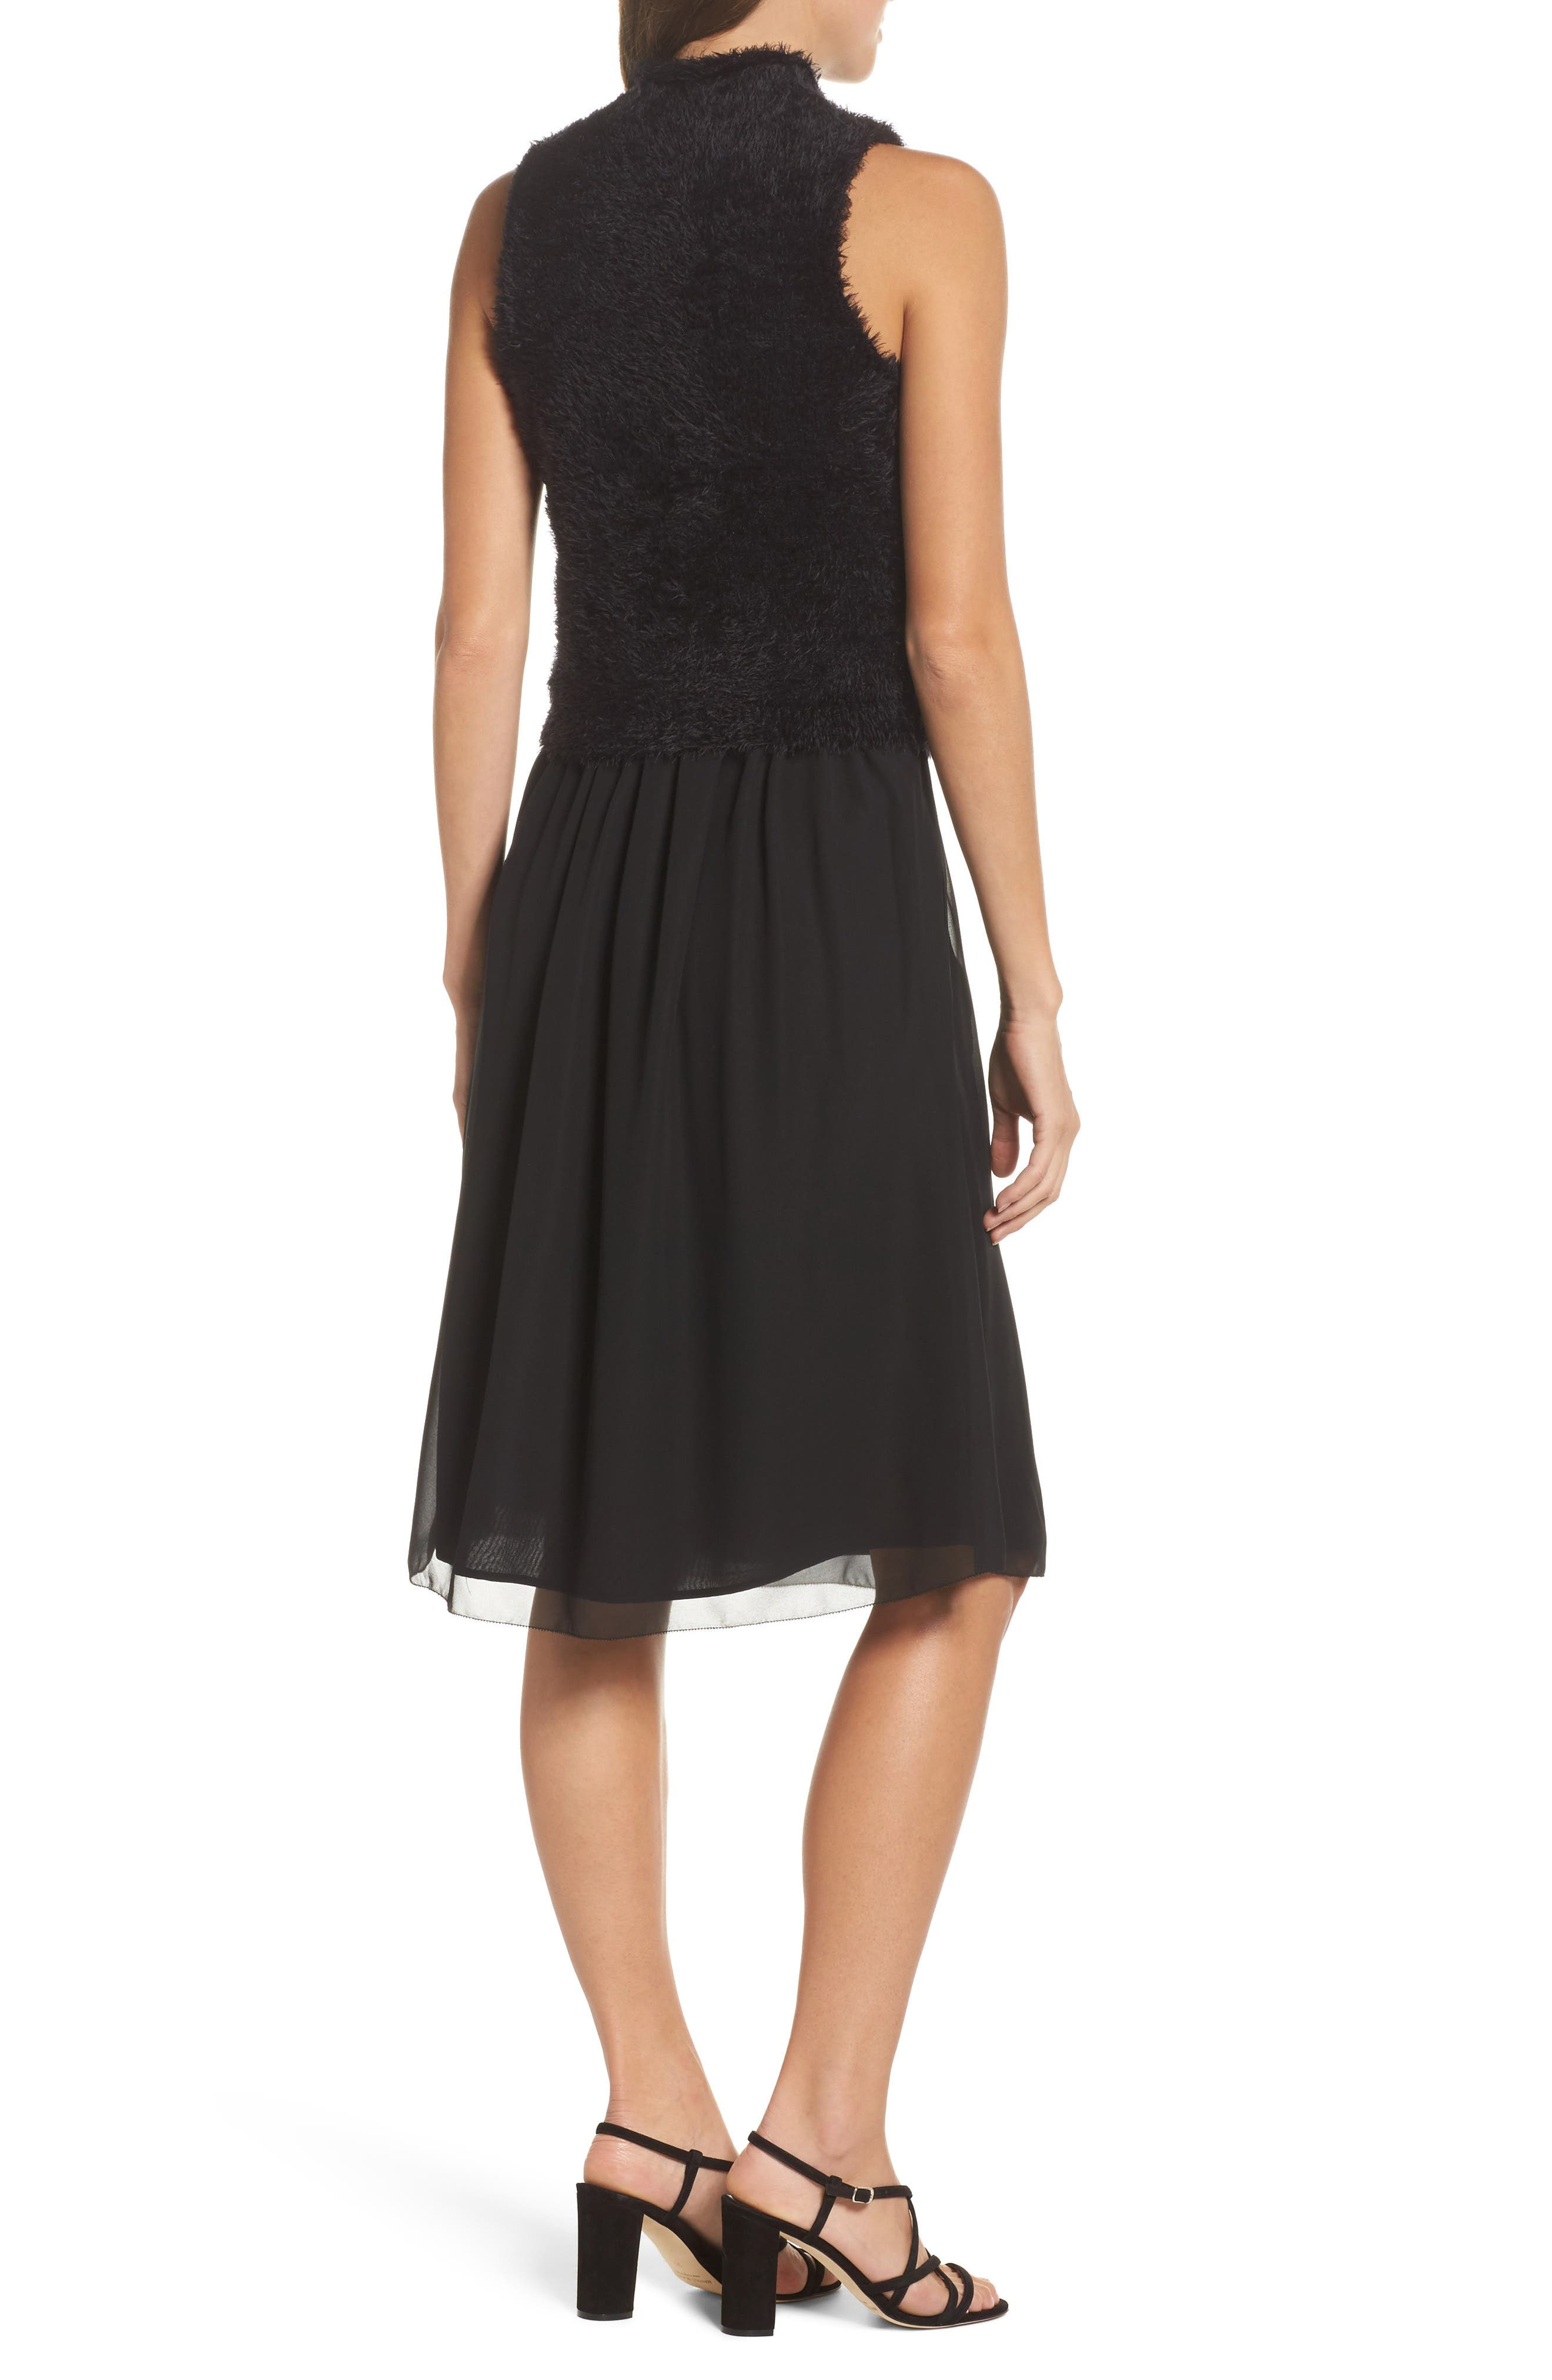 NIC + ZOE Lace-Up Dress,                             Alternate thumbnail 2, color,                             004